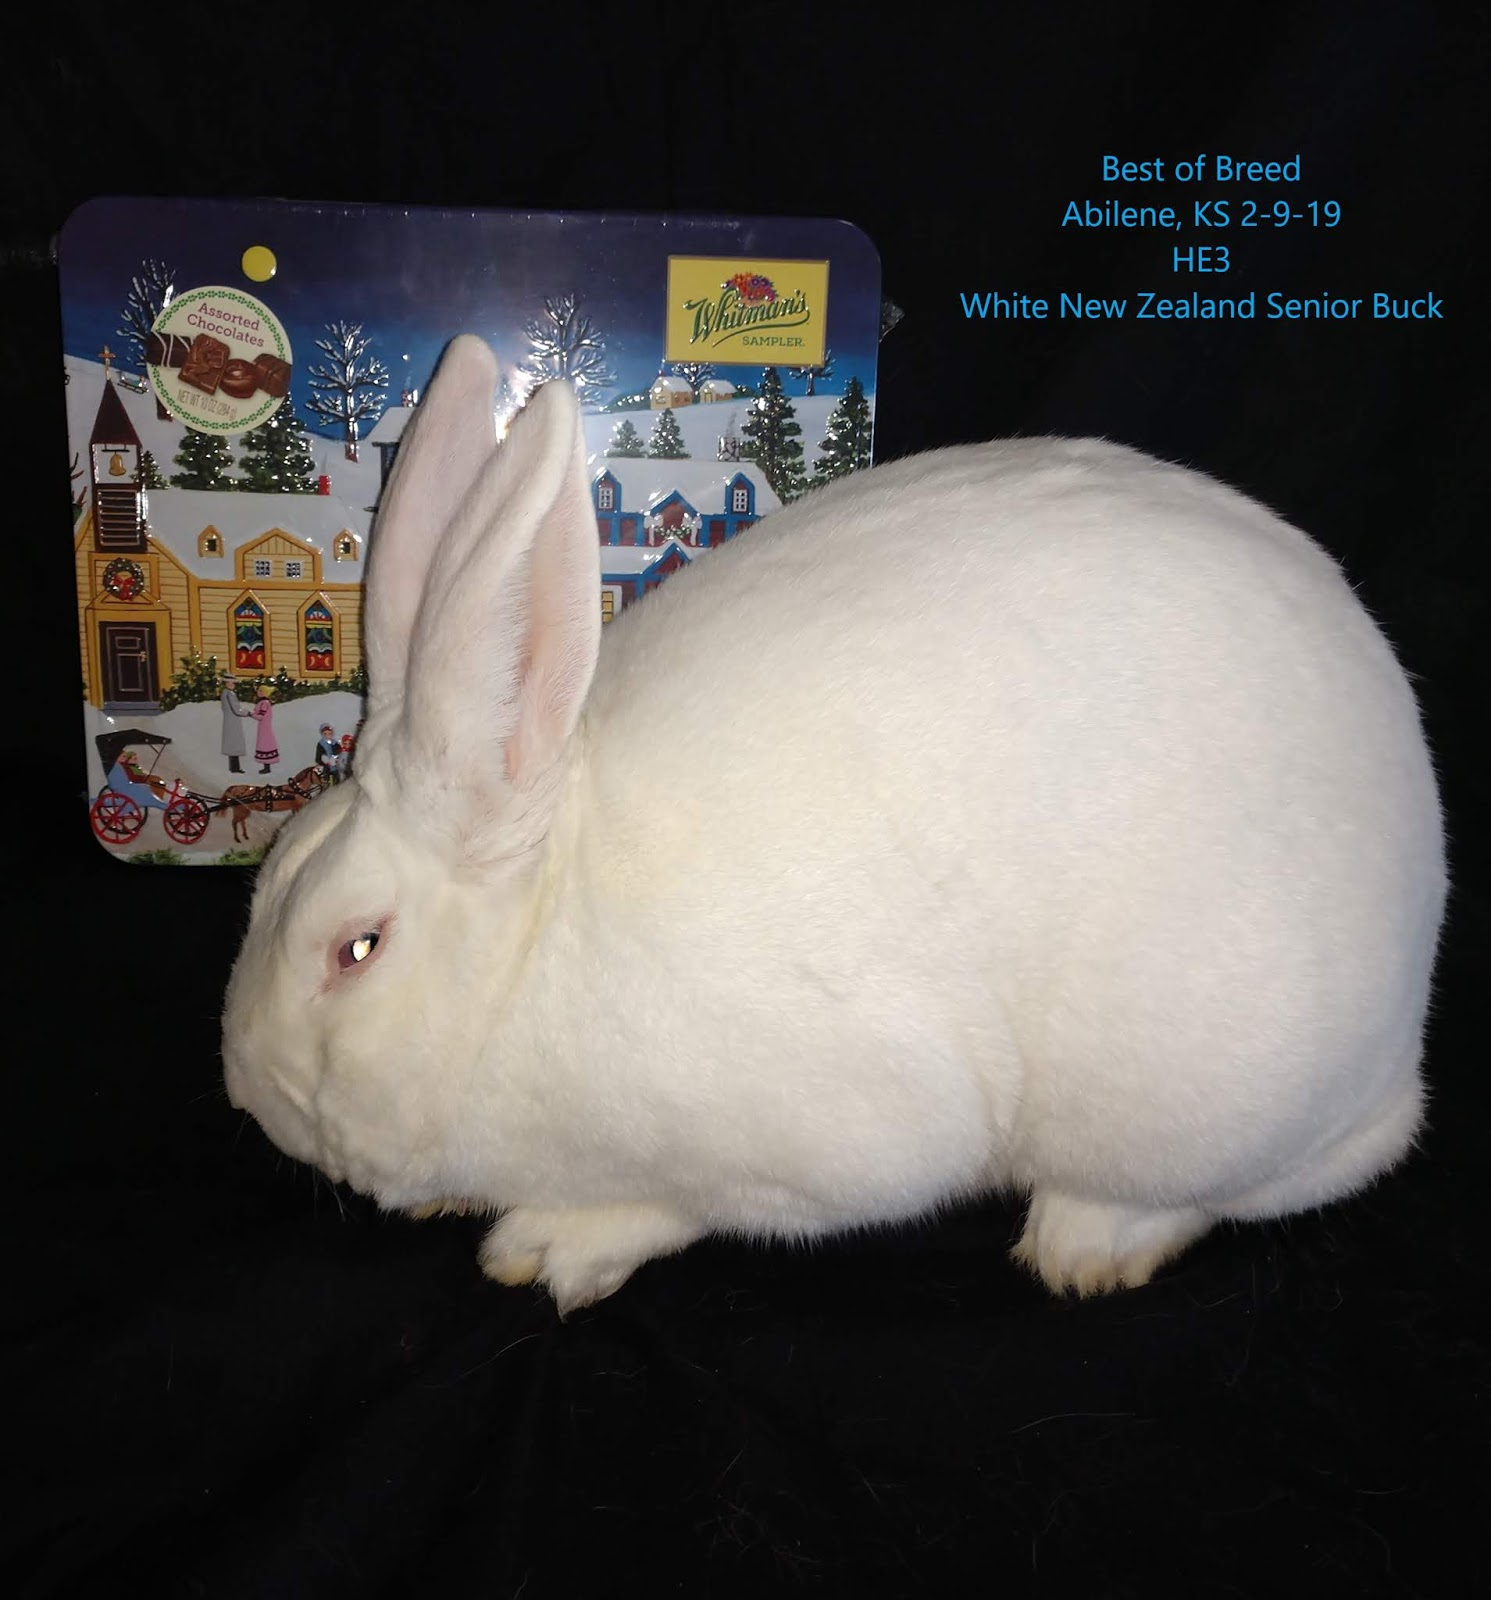 Burton Bunny Bowery Abilene Kansas Best Of Breed